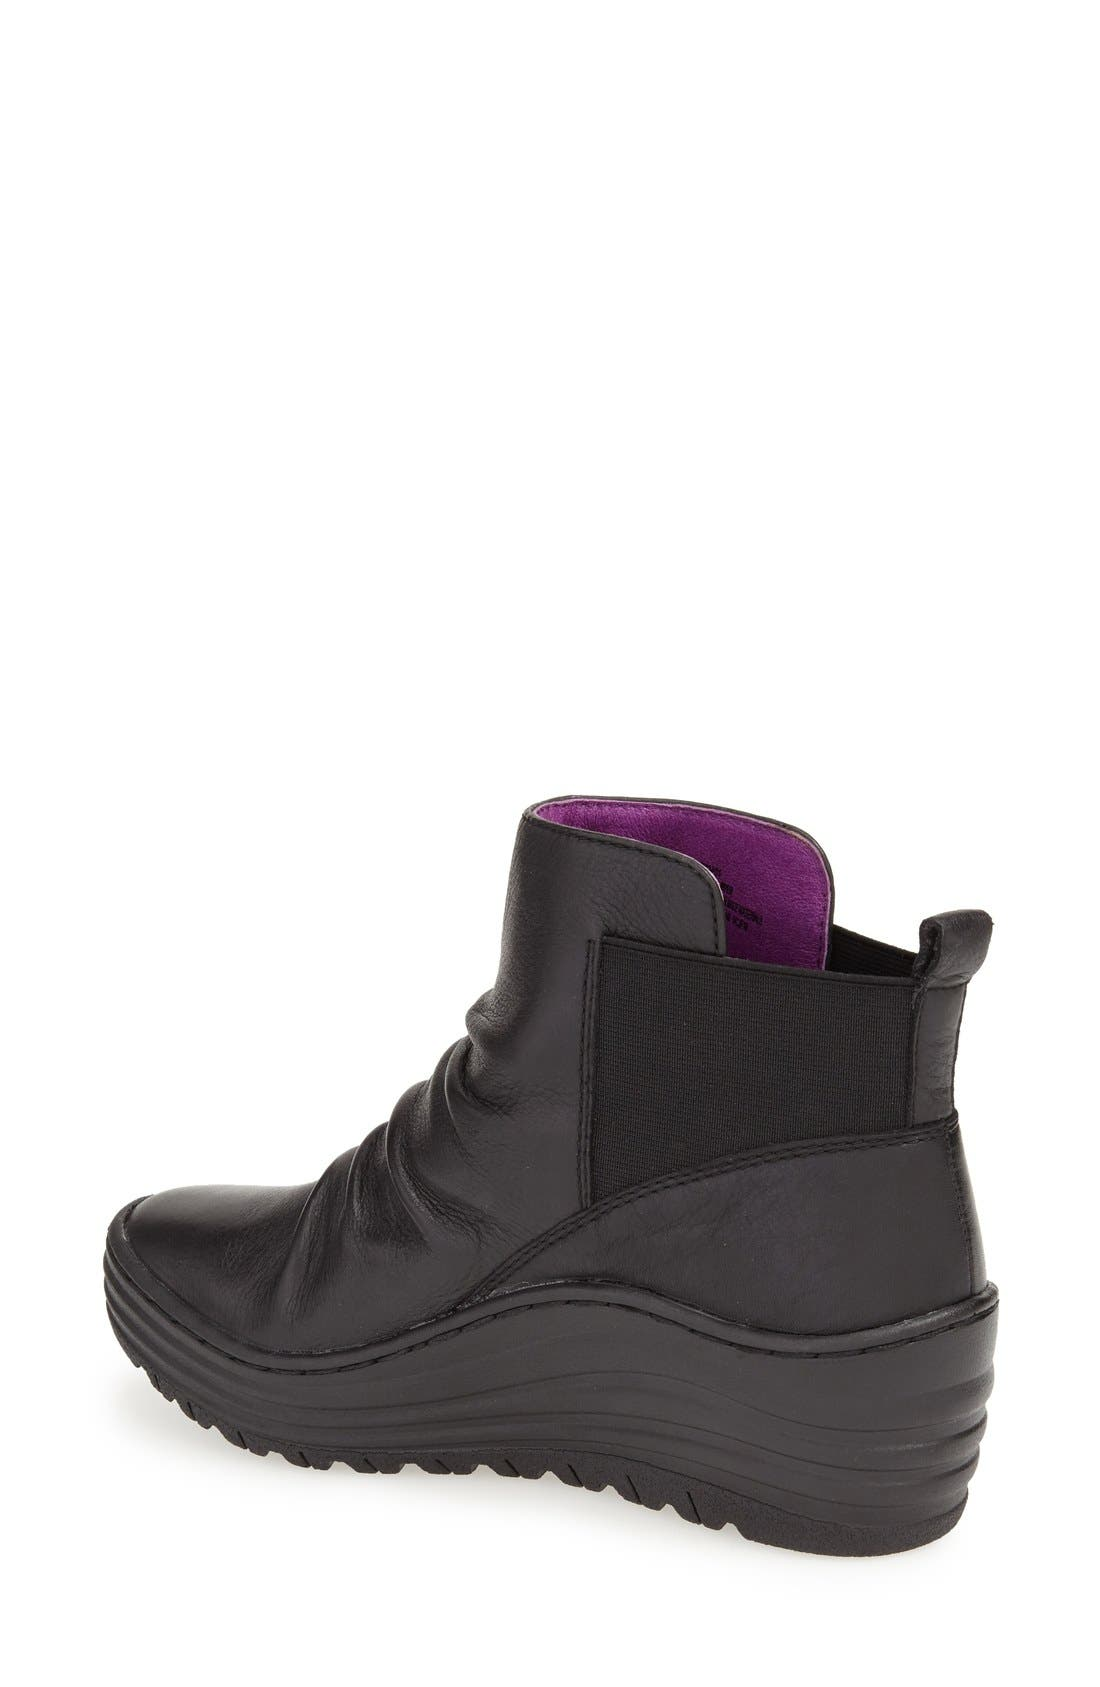 'Gilford' Wedge Bootie,                             Alternate thumbnail 2, color,                             001